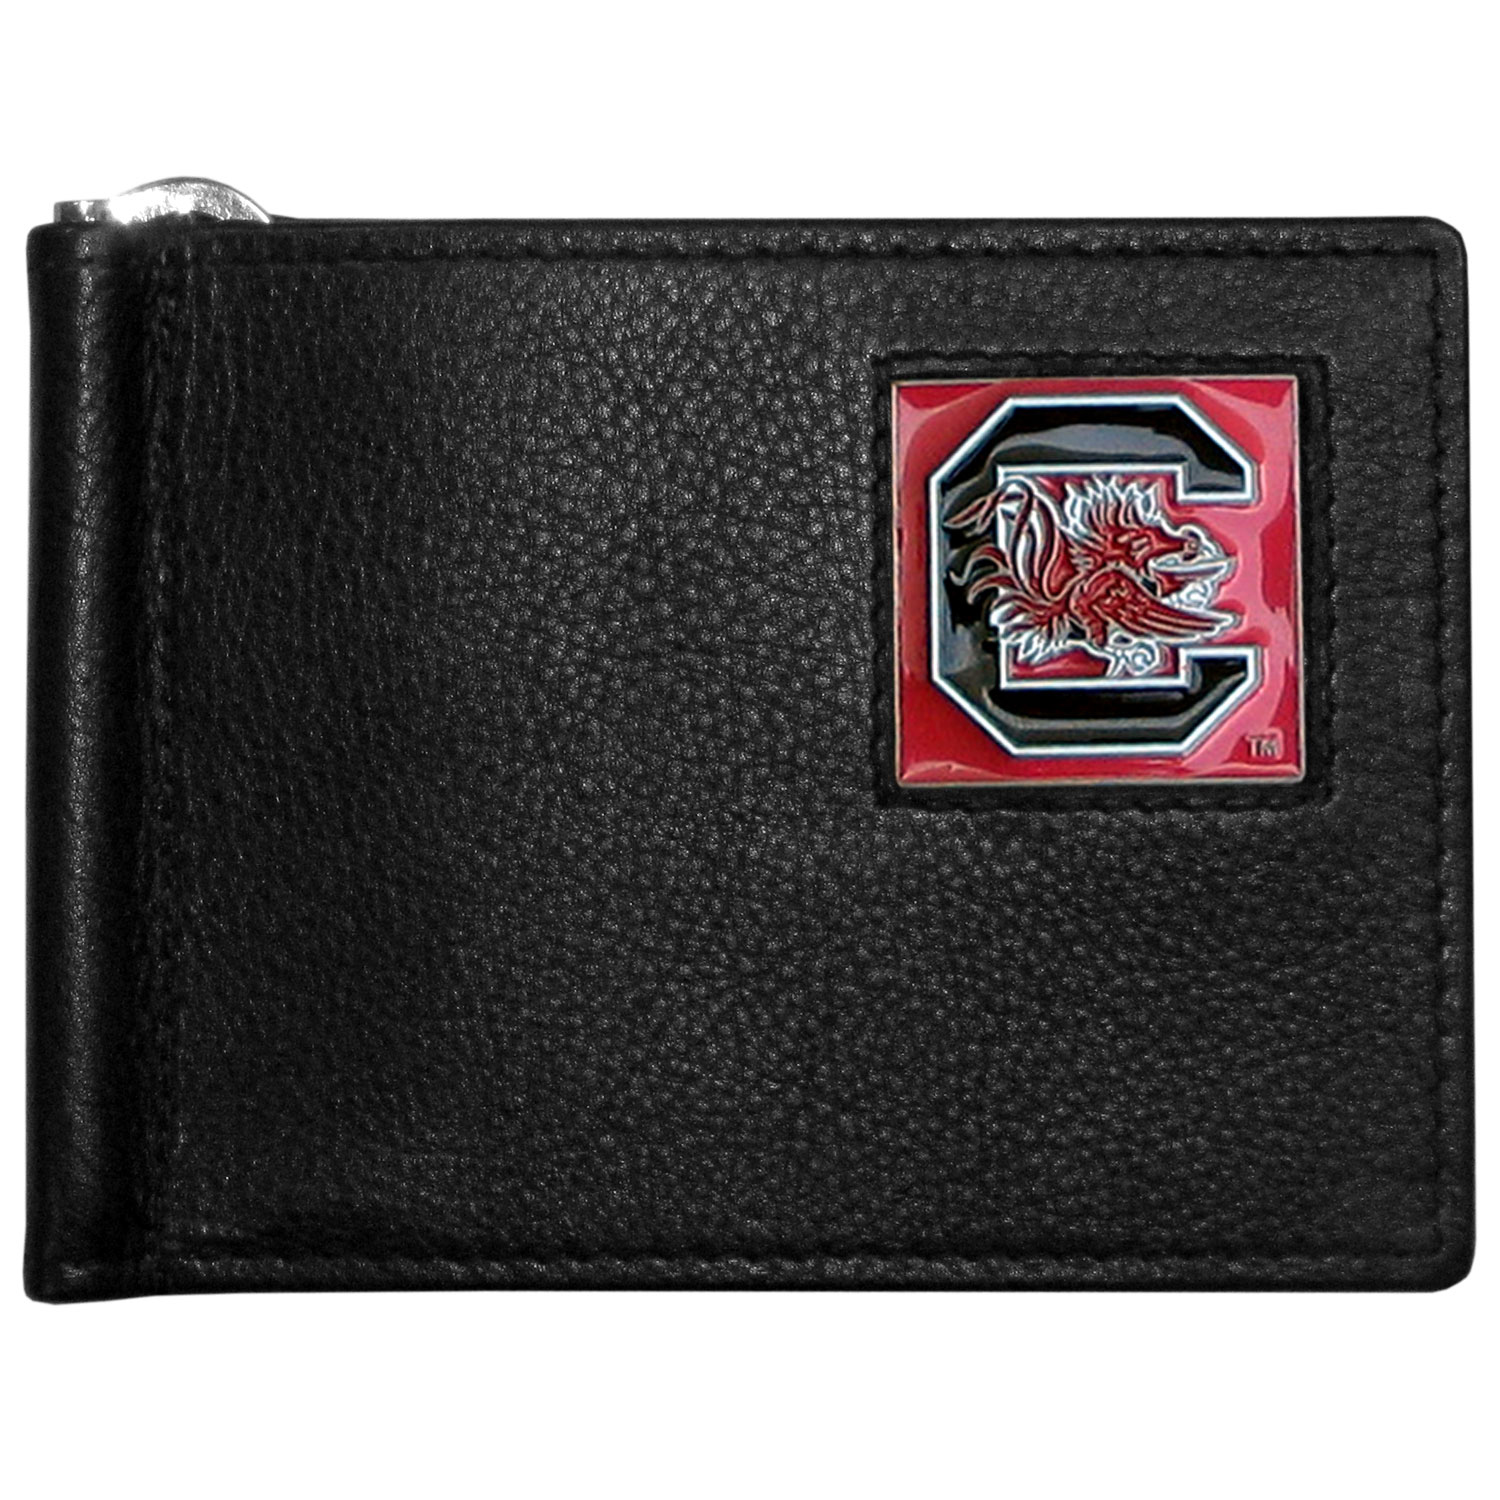 S. Carolina Gamecocks Leather Bill Clip Wallet - This cool new style wallet features an inner, metal bill clip that lips up for easy access. The super slim wallet holds tons of stuff with ample pockets, credit card slots & windowed ID slot. The wallet is made of genuine fine grain leather and it finished with a metal S. Carolina Gamecocks emblem. The wallet is shipped in gift box packaging.